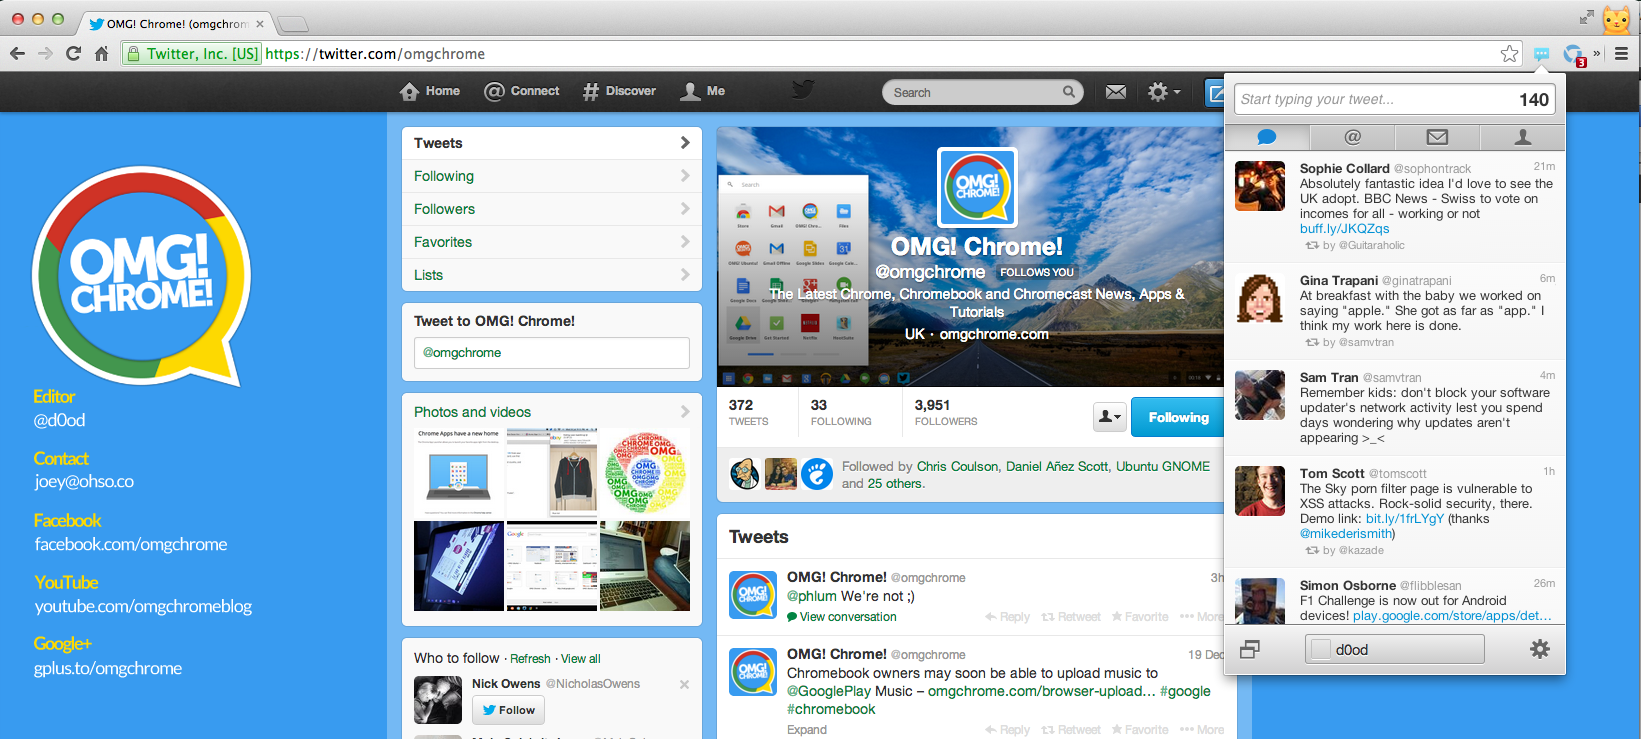 Twitter Notifier - The Best Chrome Extension For Twitter